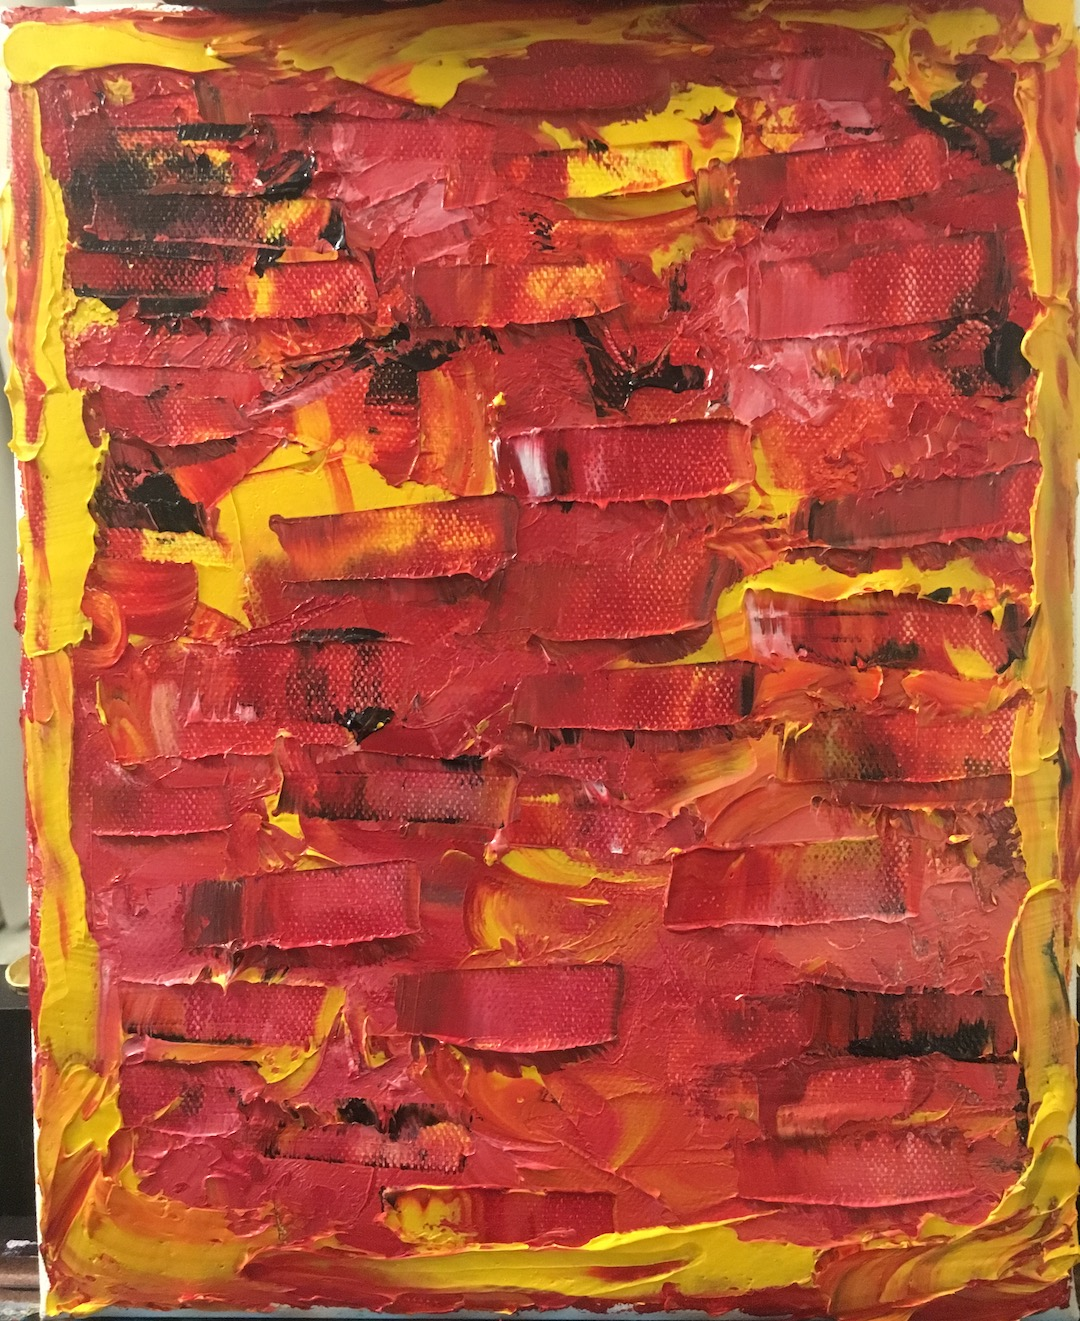 oil painting abstract red and yellow